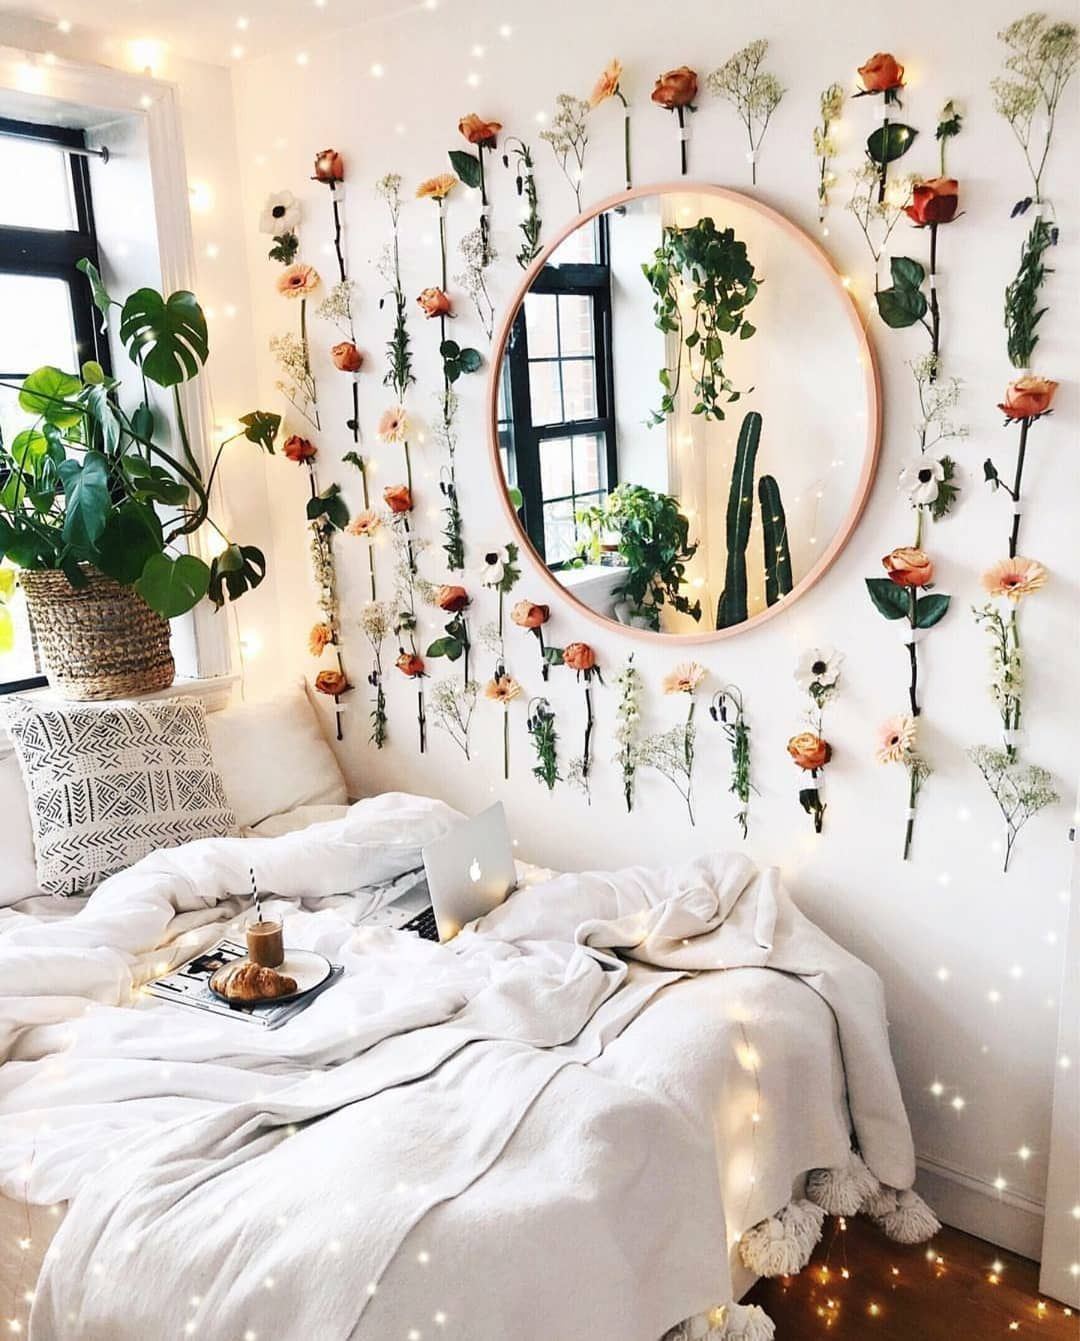 top inspirational teens bedroom ideas for girls can be found here They will unconditionally come in clear as soon as you believe to be to design your bedroom